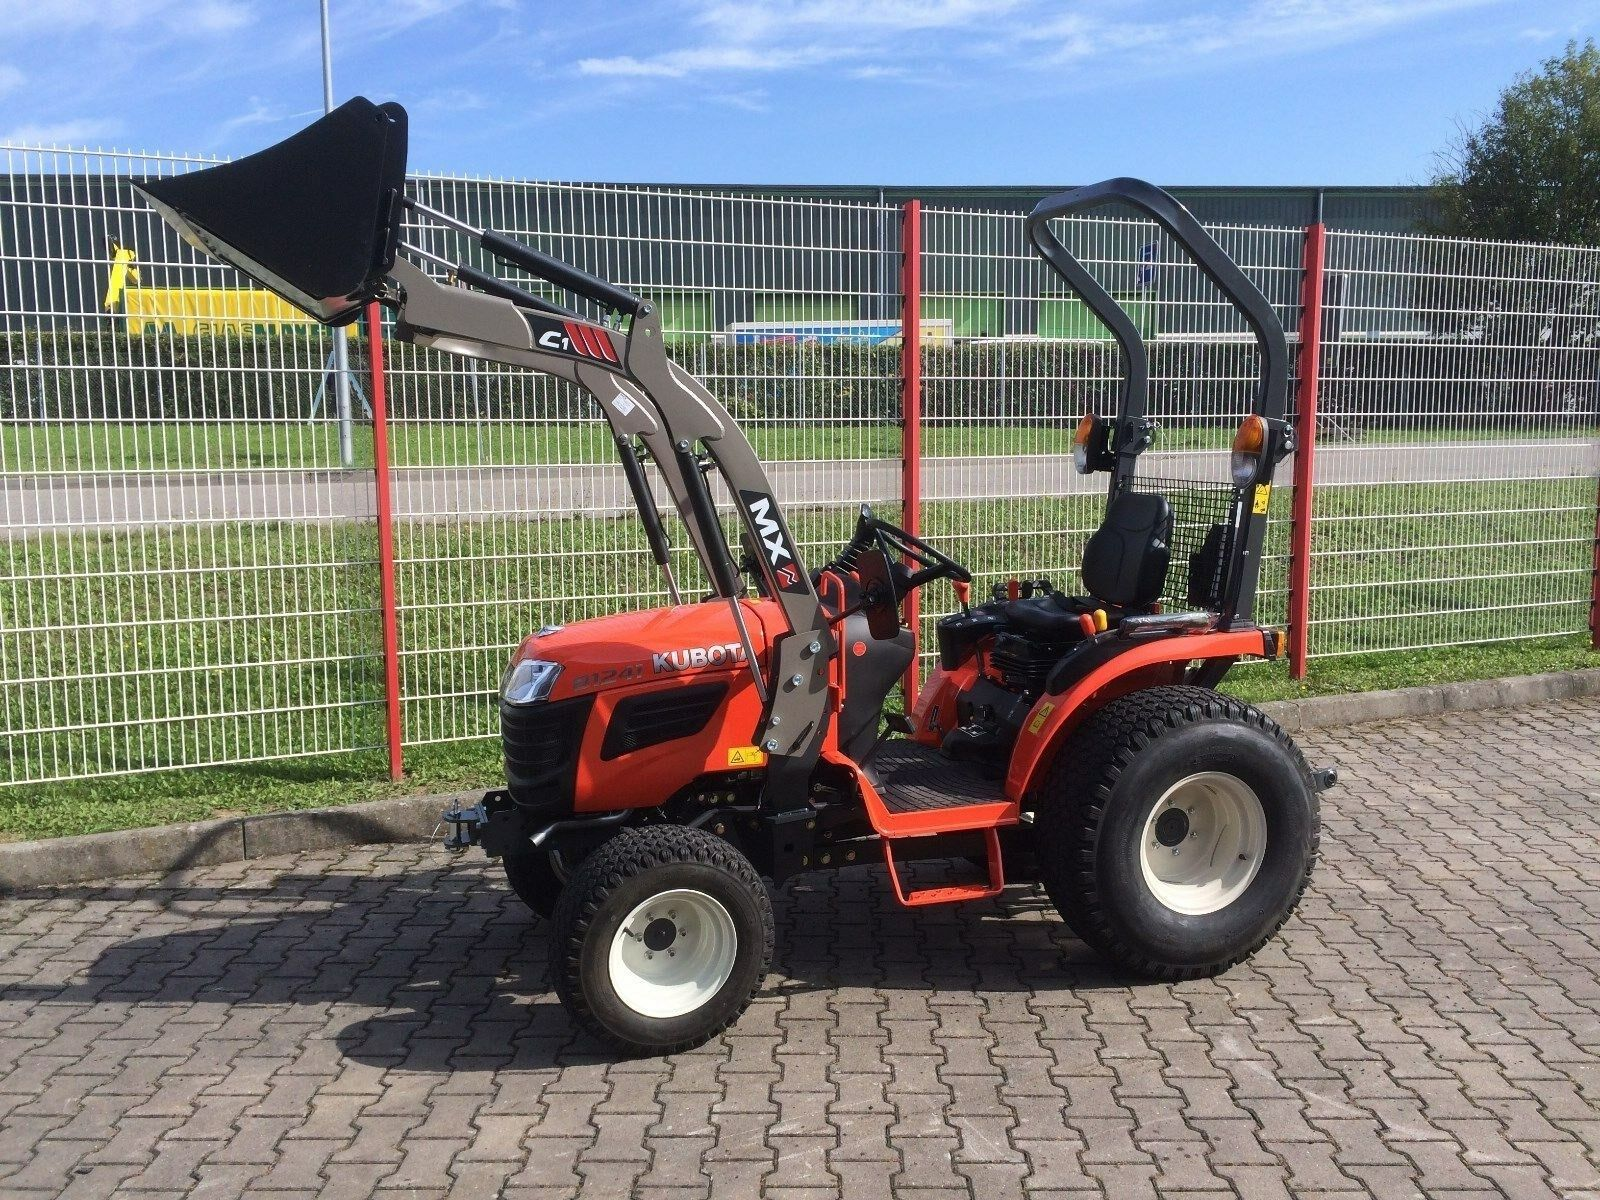 kubota b1241 traktor mit frontlader mx c1 kleintraktor. Black Bedroom Furniture Sets. Home Design Ideas